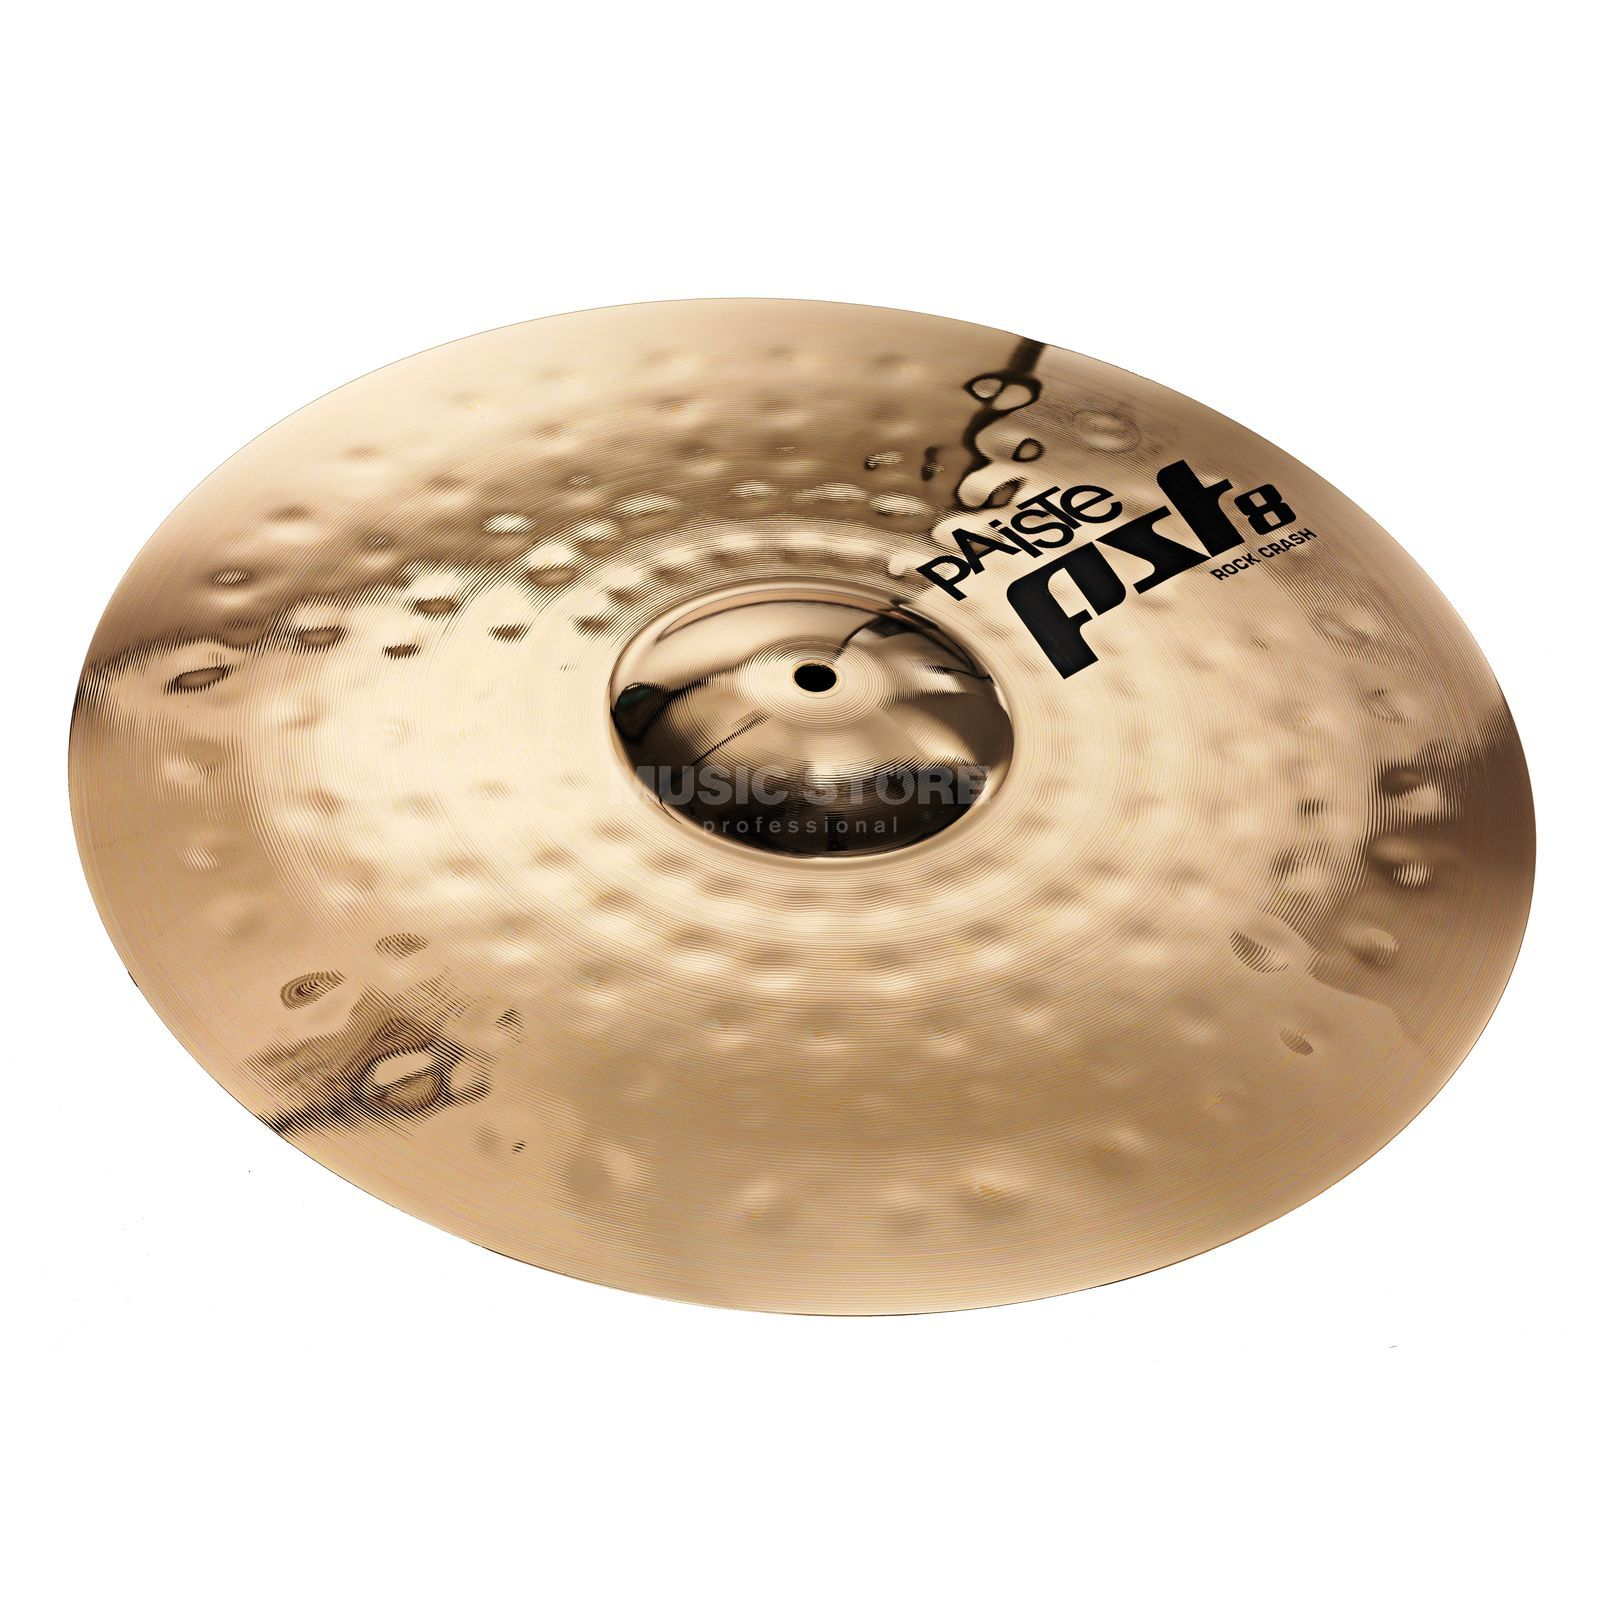 "Paiste PST8 Rock Crash 17"", Reflector Finish Product Image"